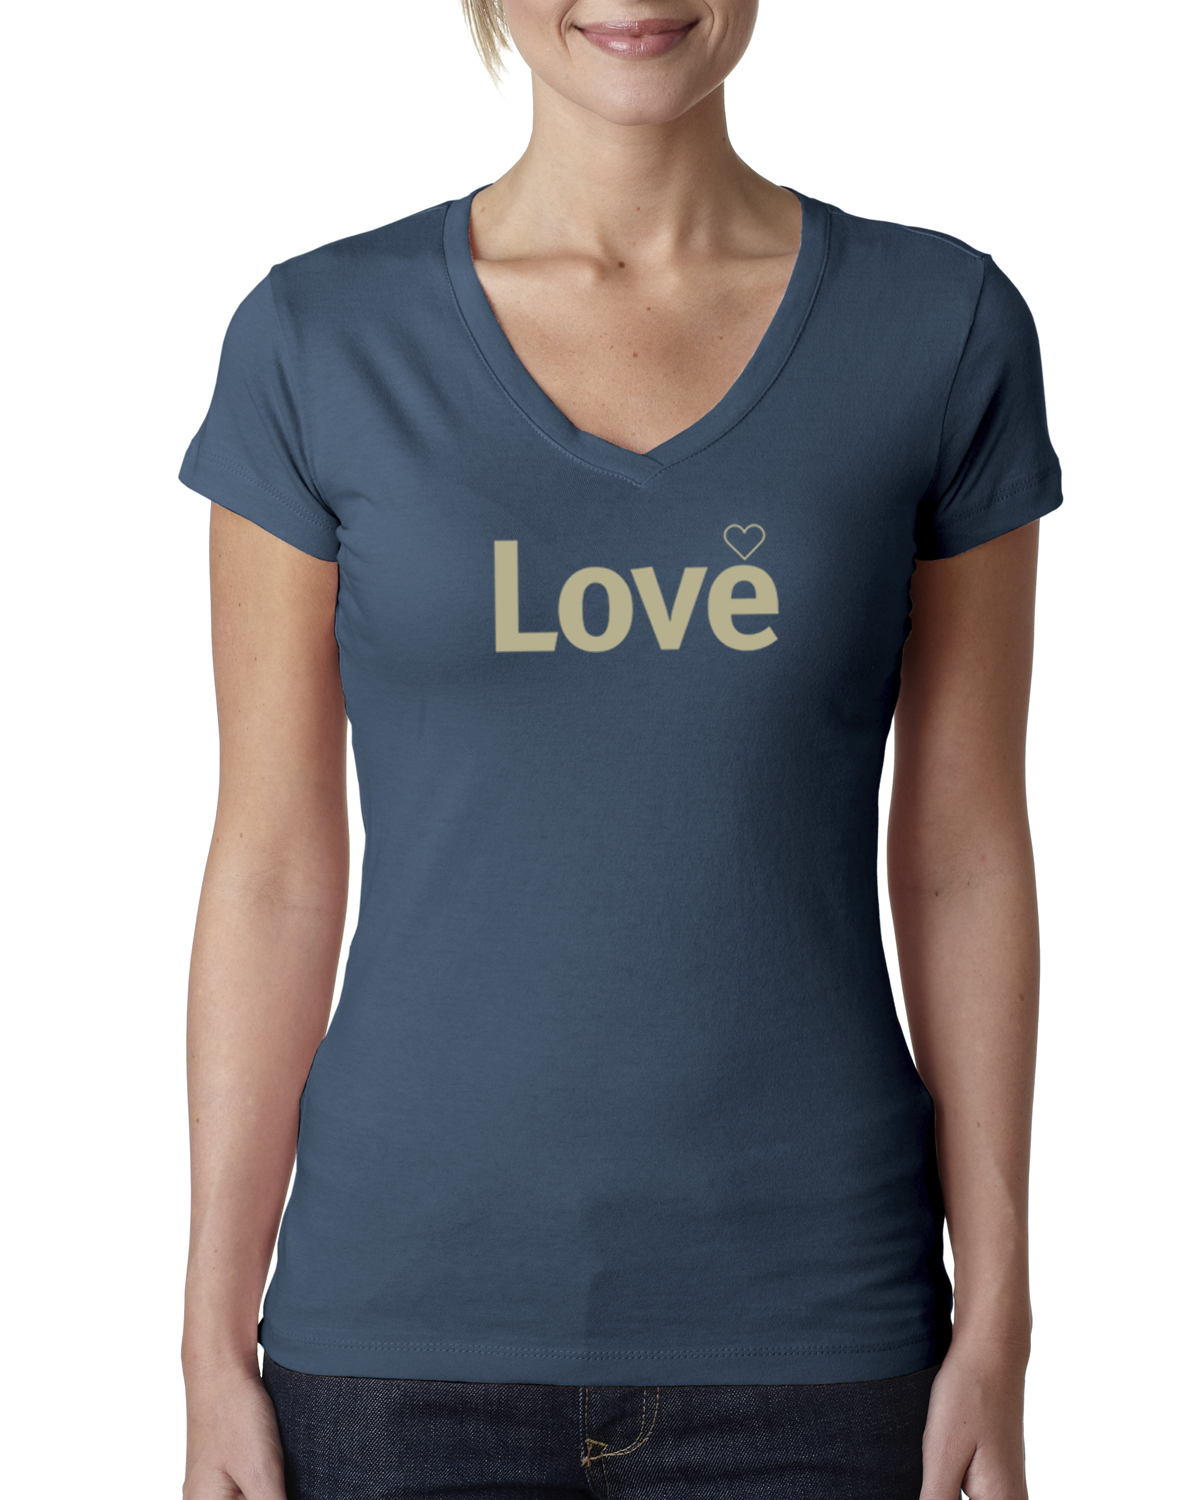 Short sleeve v-neck Love T-shirt for women (indigo)